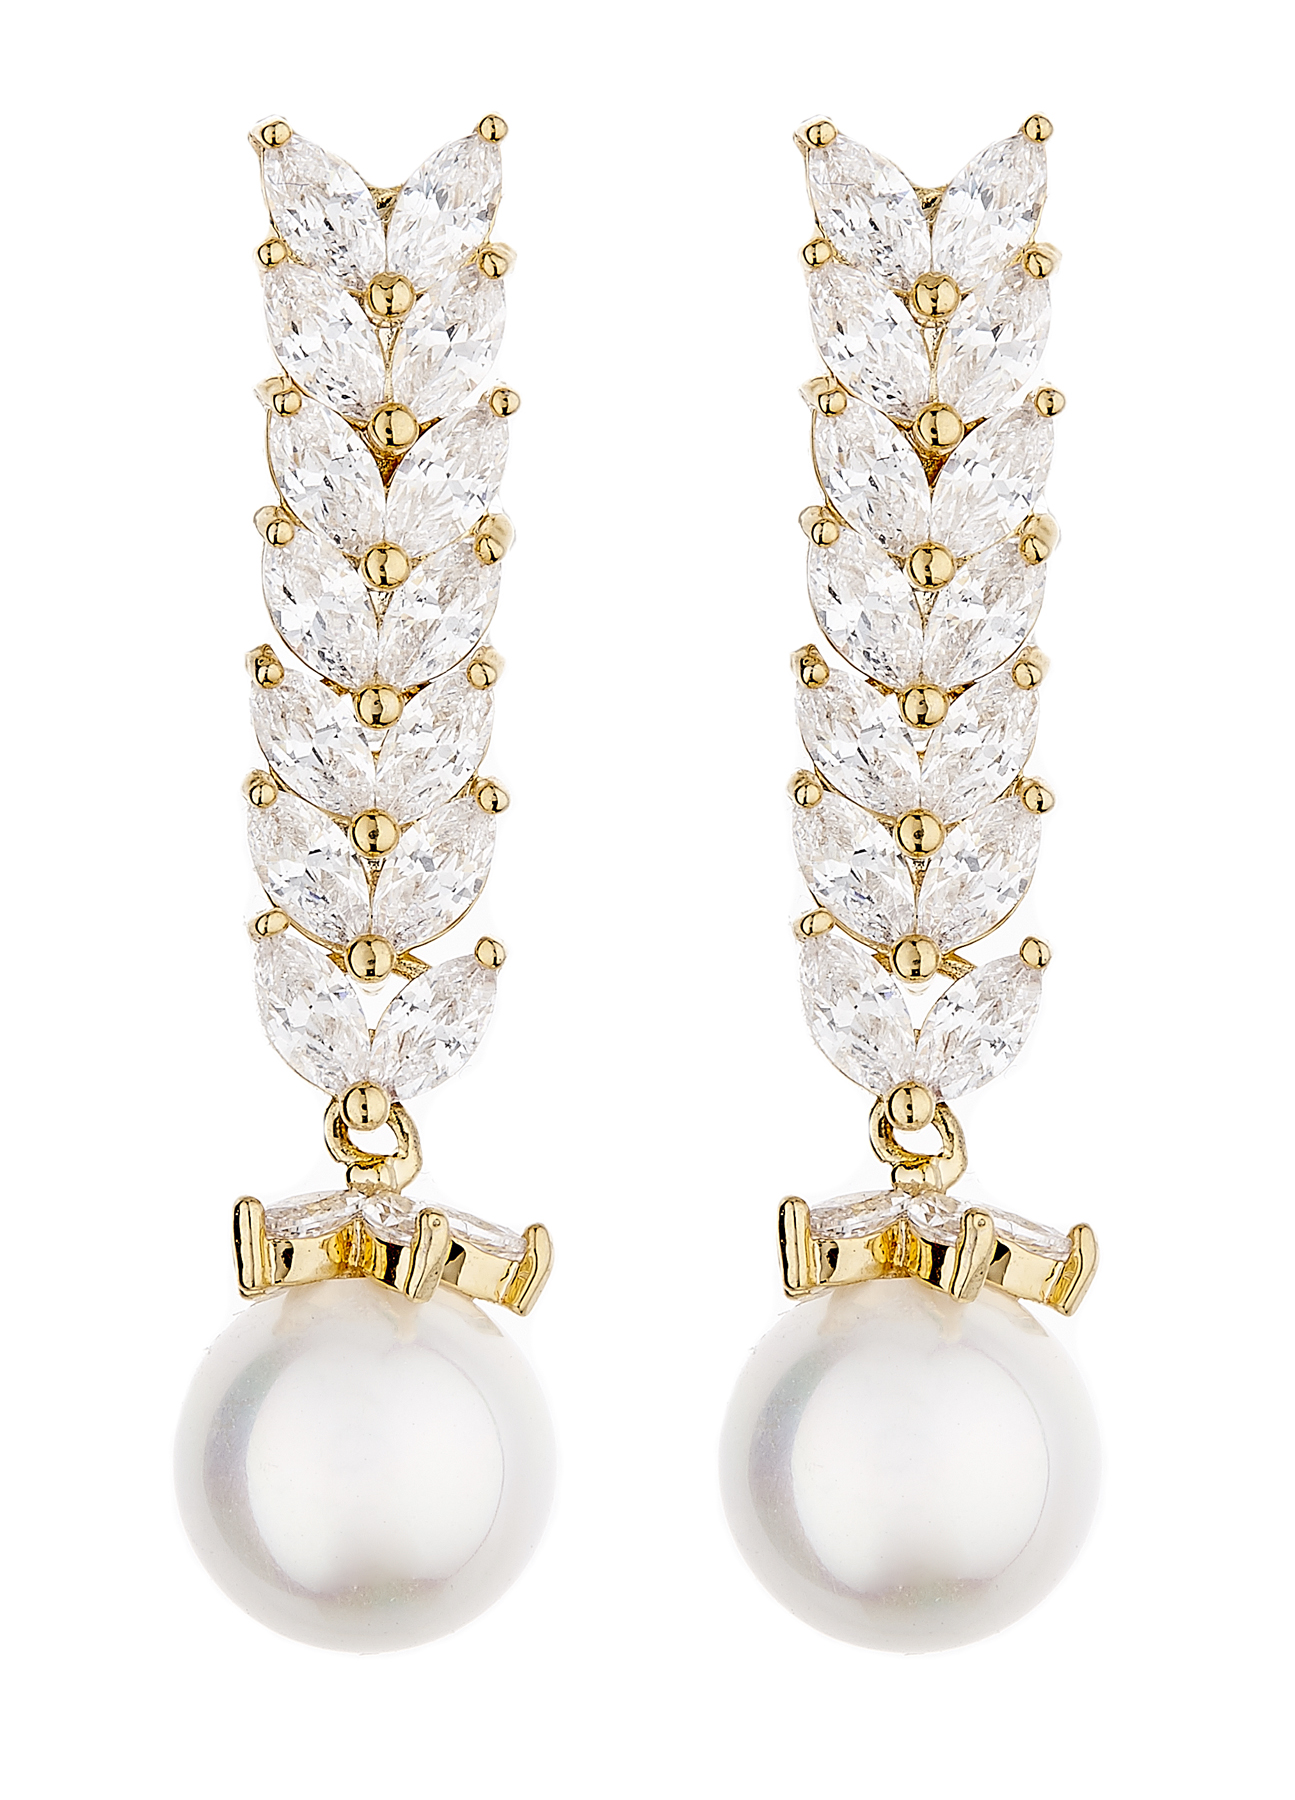 Clip On Earrings - Naomi G - gold luxury drop earring with a pearl and cubic zirconia stones